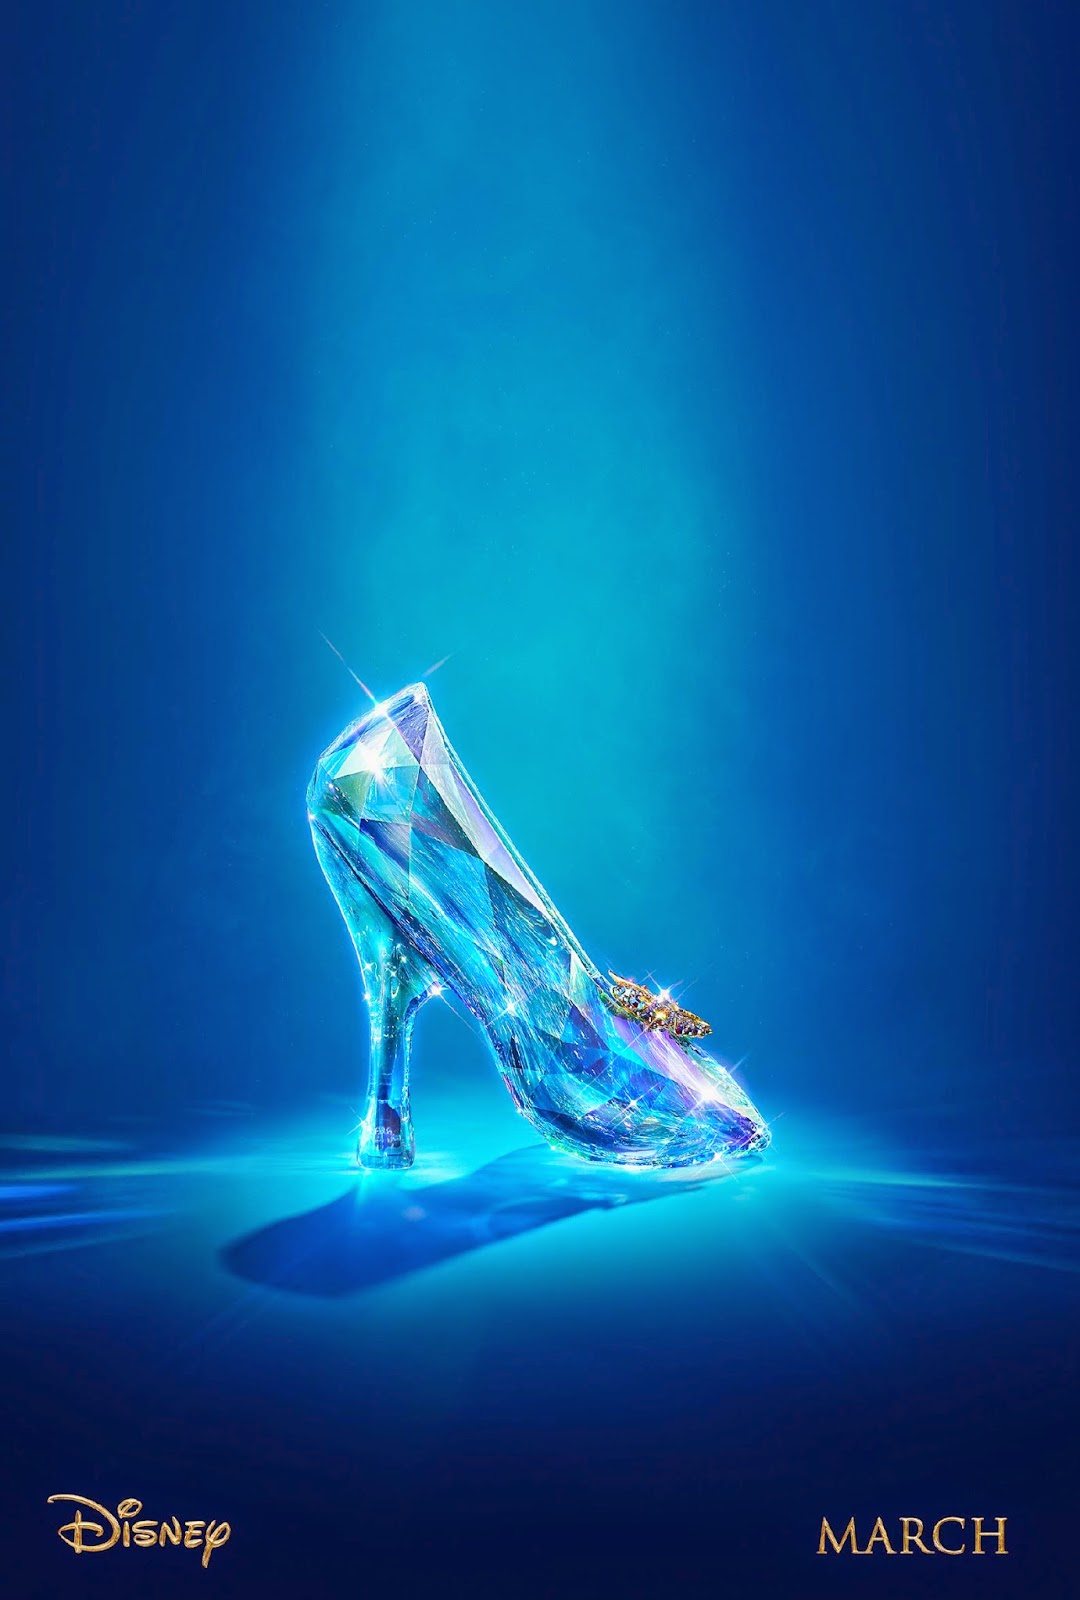 Cinderella 2015 Movie Glass Shoe Wallpaper HD